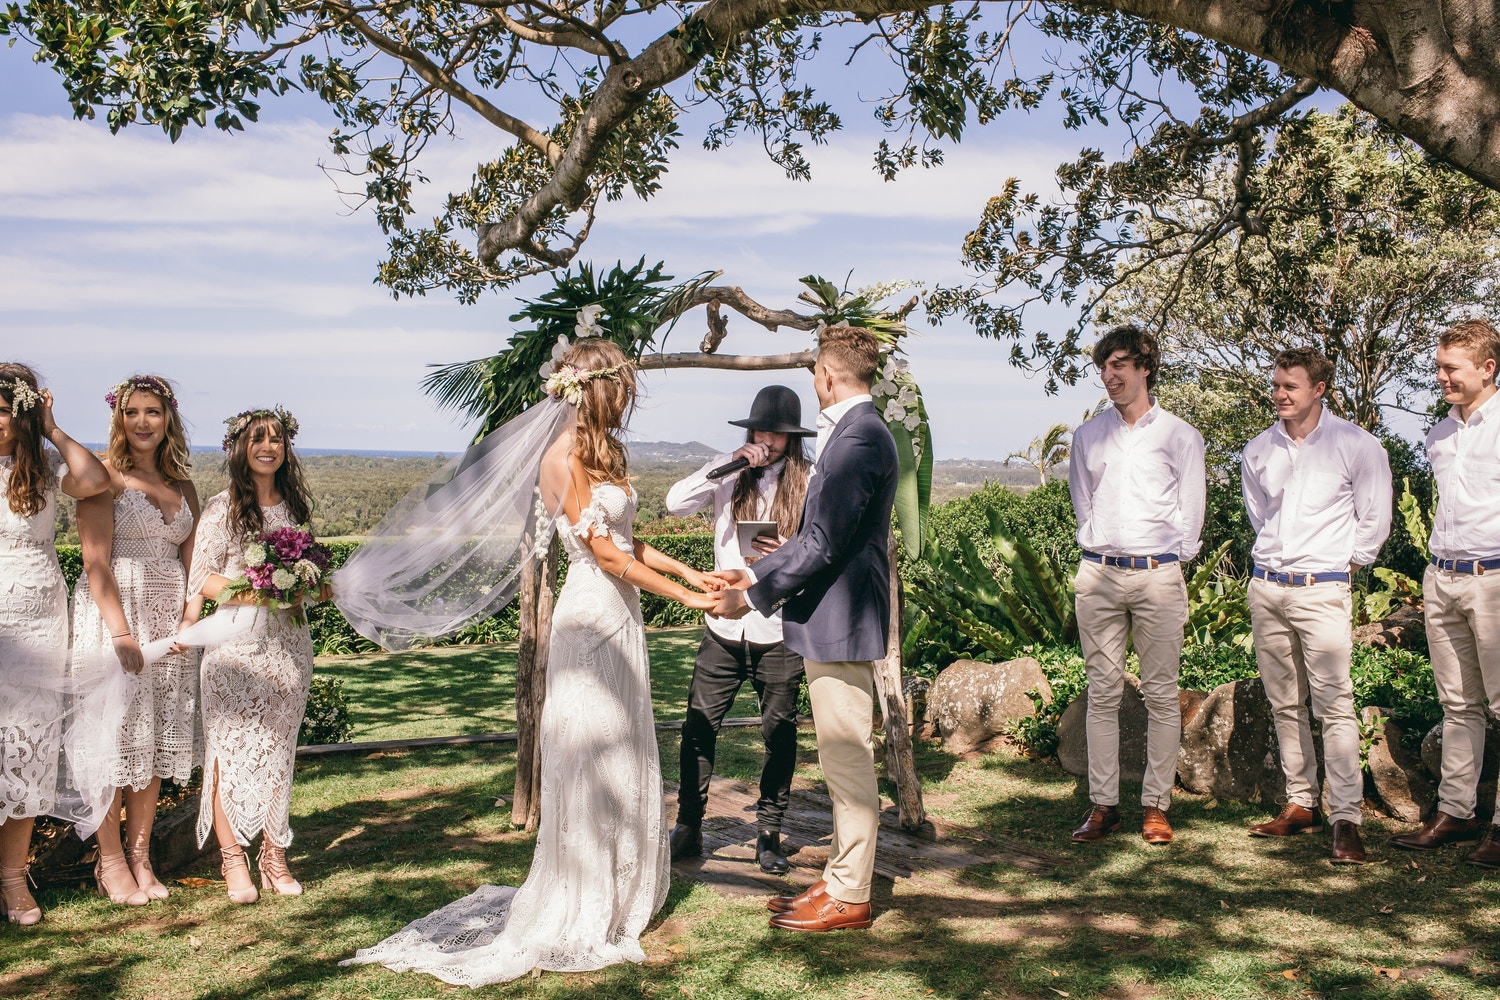 ALEX & NICK'S BOHO INSPIRED WEDDING